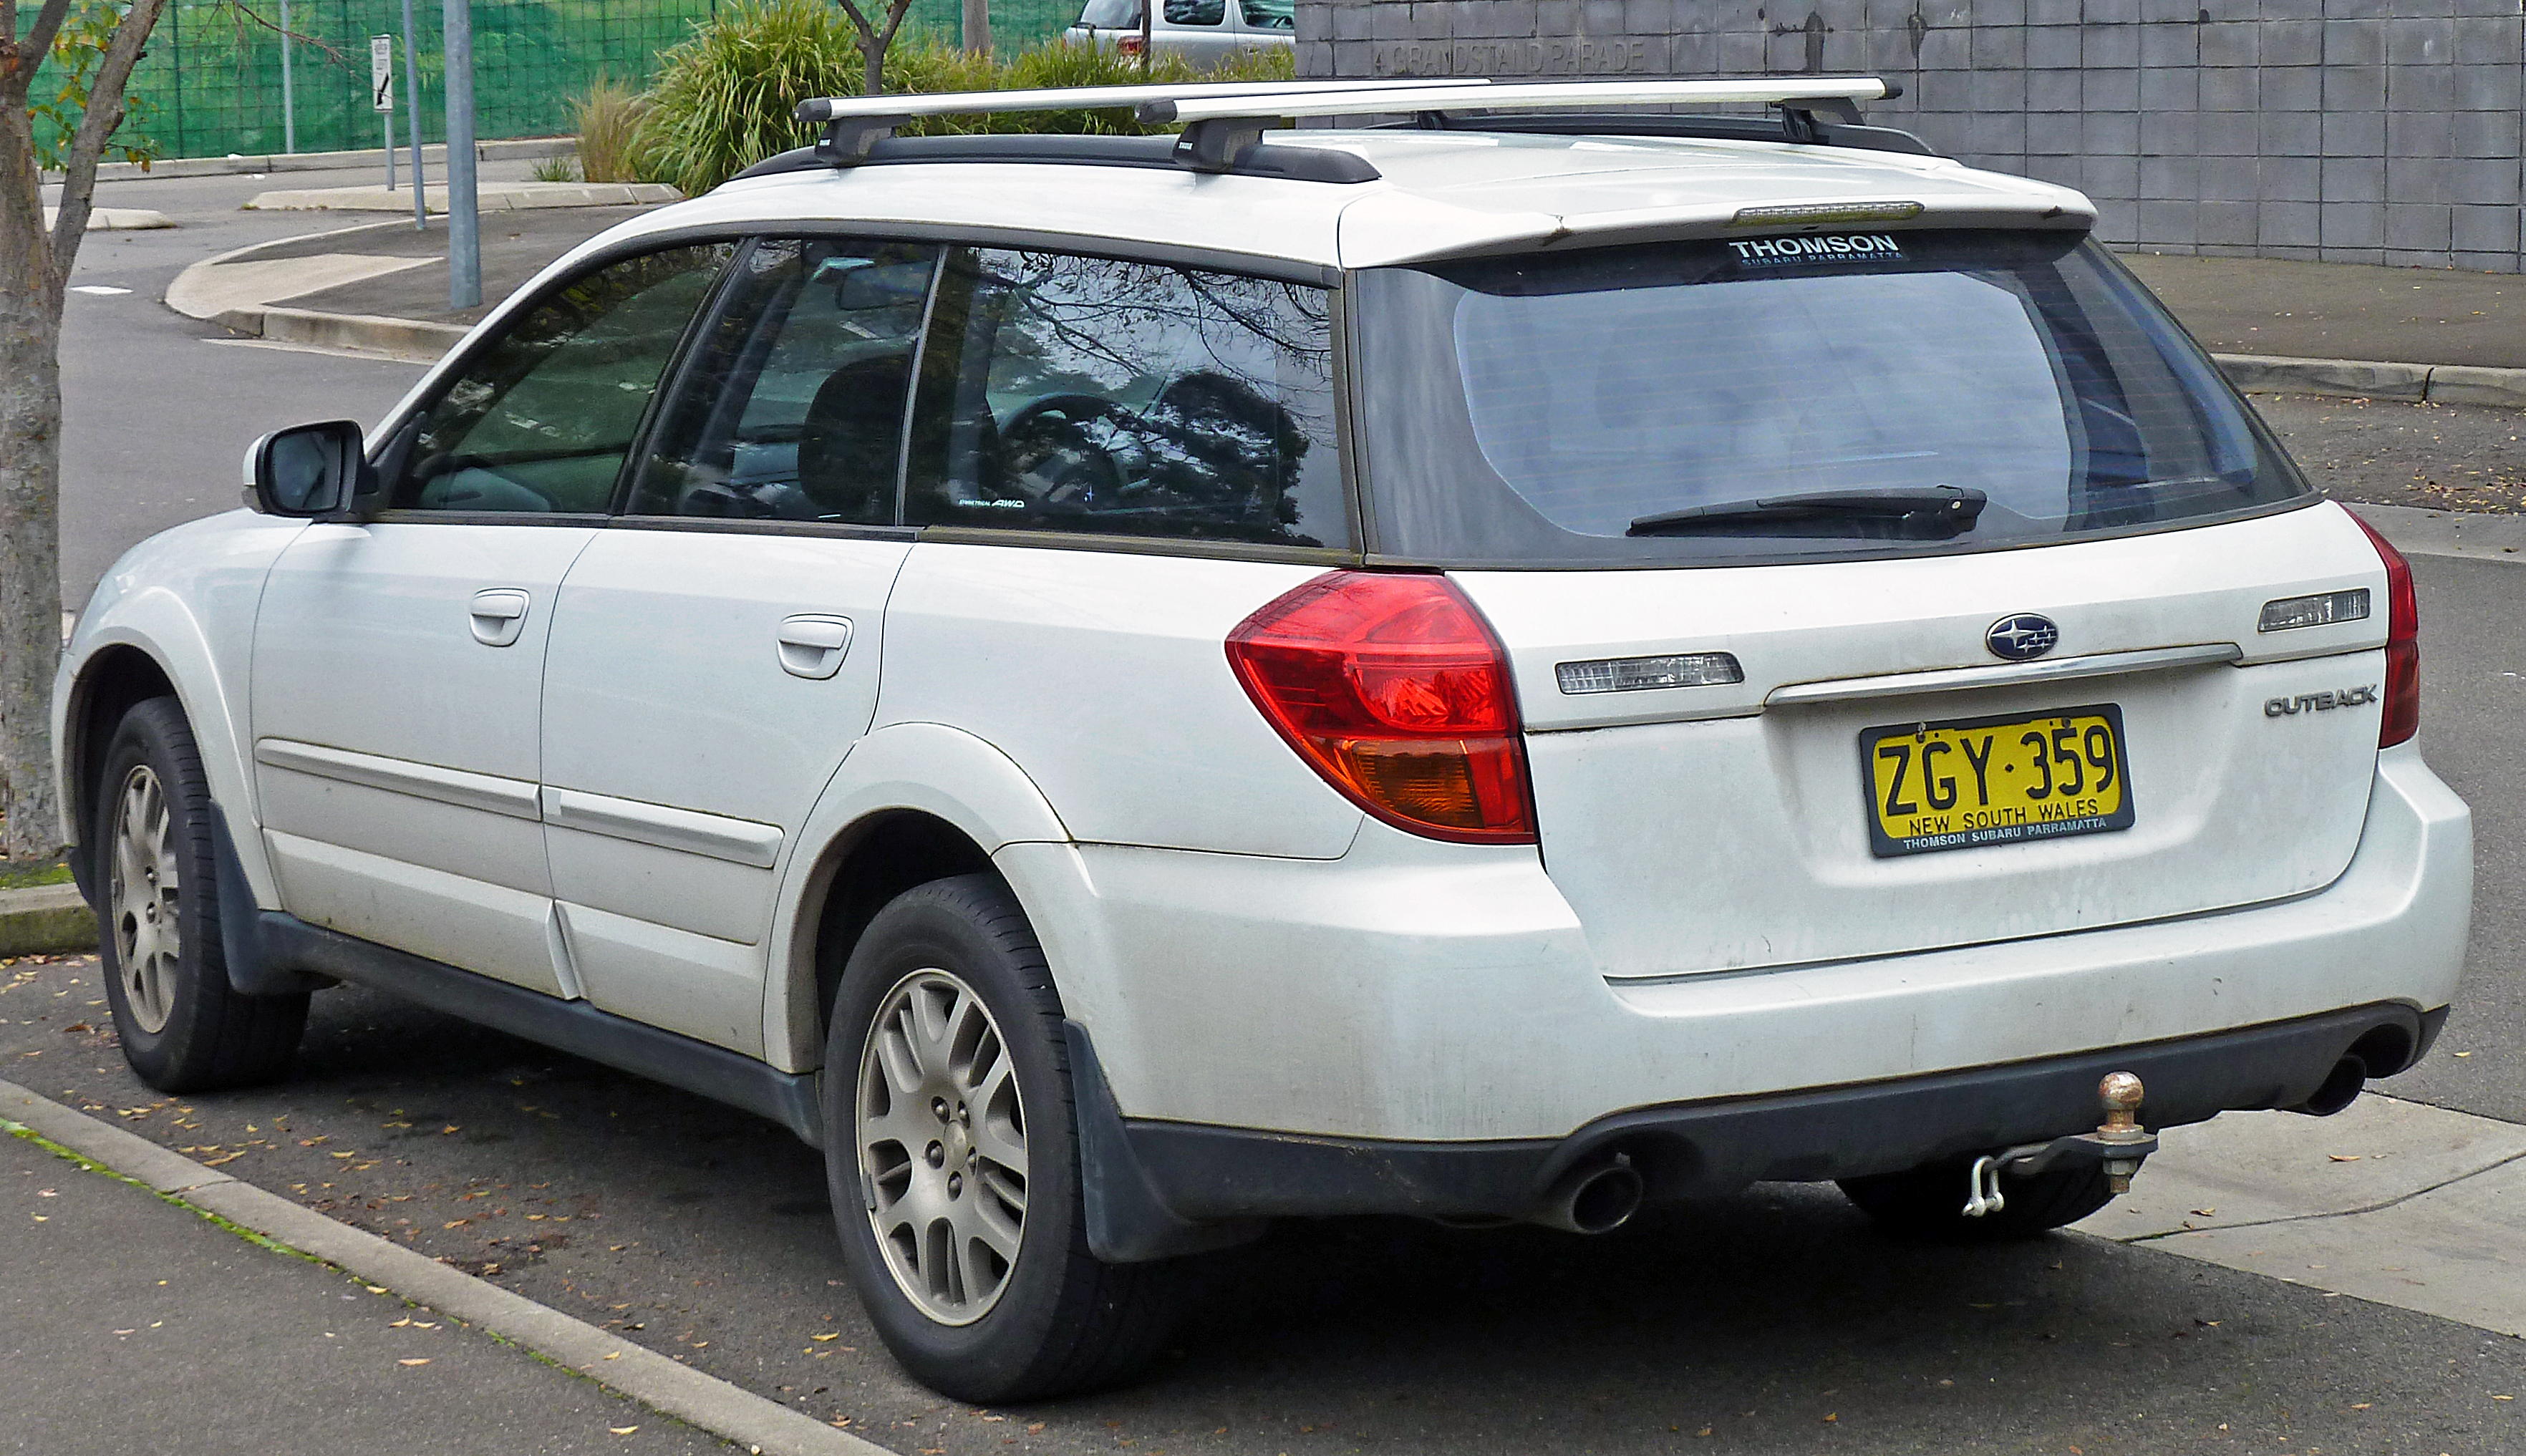 SUBARU OUTBACK 2.5 AT white